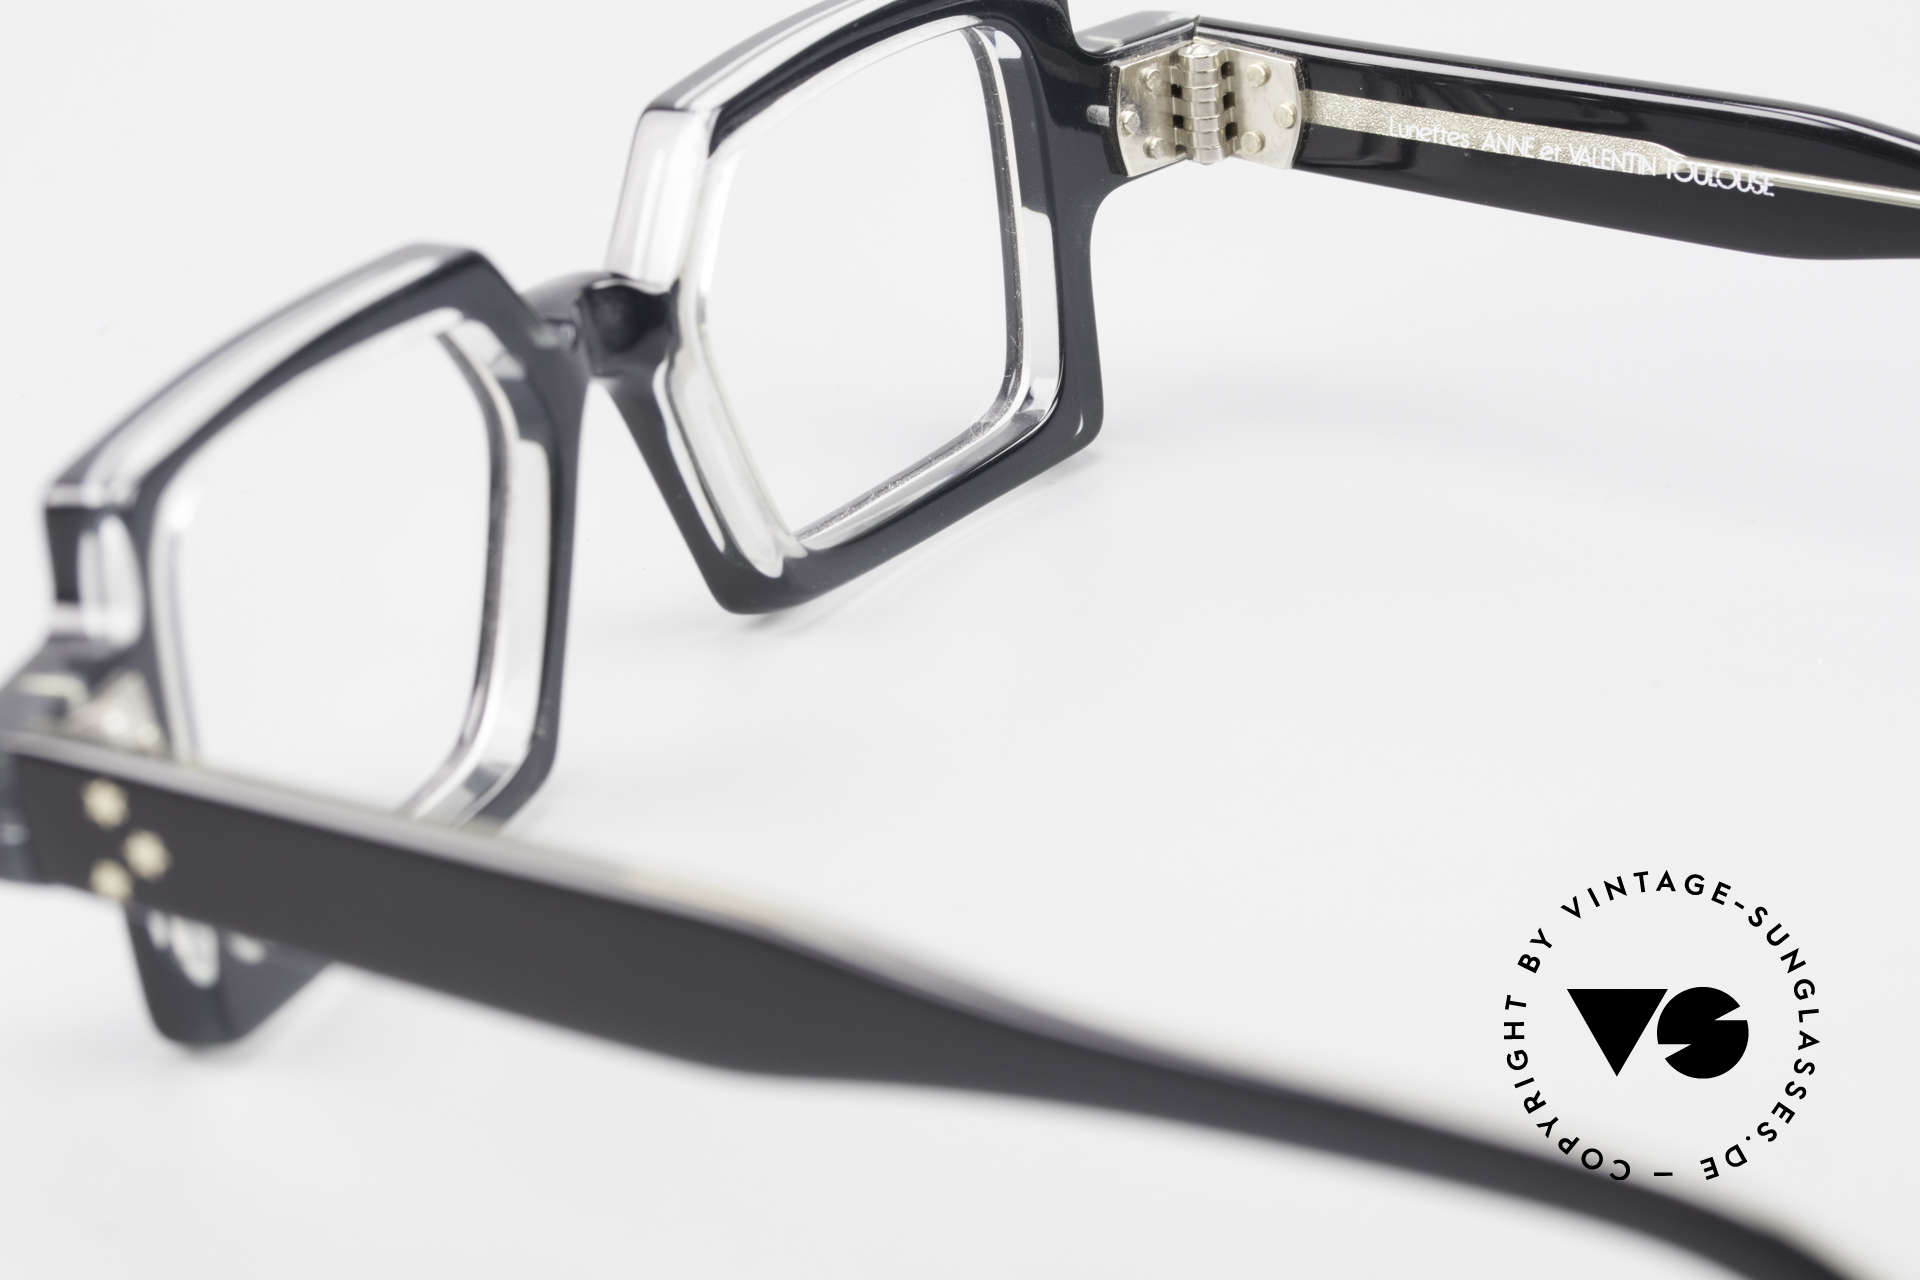 Anne Et Valentin Chico Square Old 80's Eyeglasses, UNWORN, single item, comes with an orig. case, Made for Men and Women